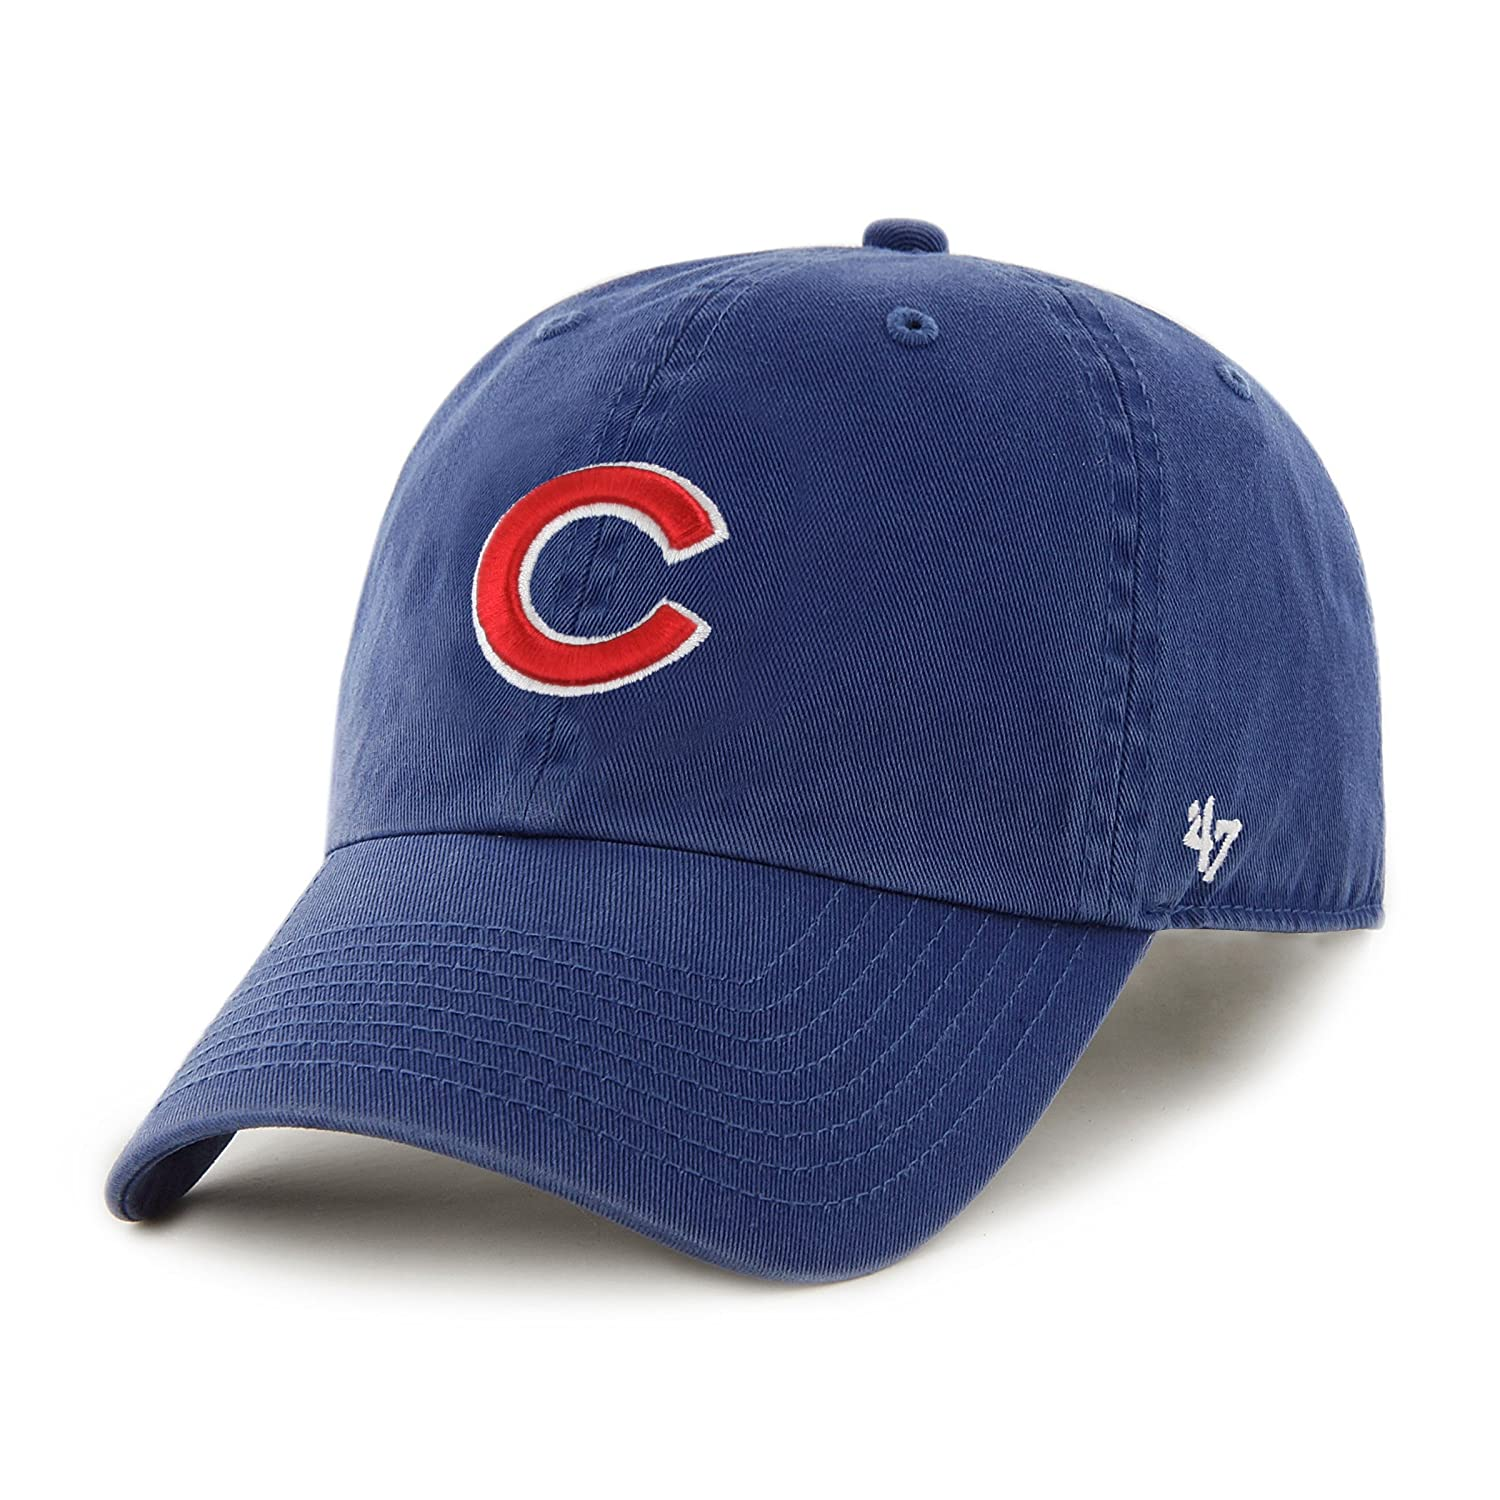 abf76e6c860 Amazon.com   Chicago Cubs MVP Adjustable Cap (Royal Blue)   Baseball Caps    Clothing